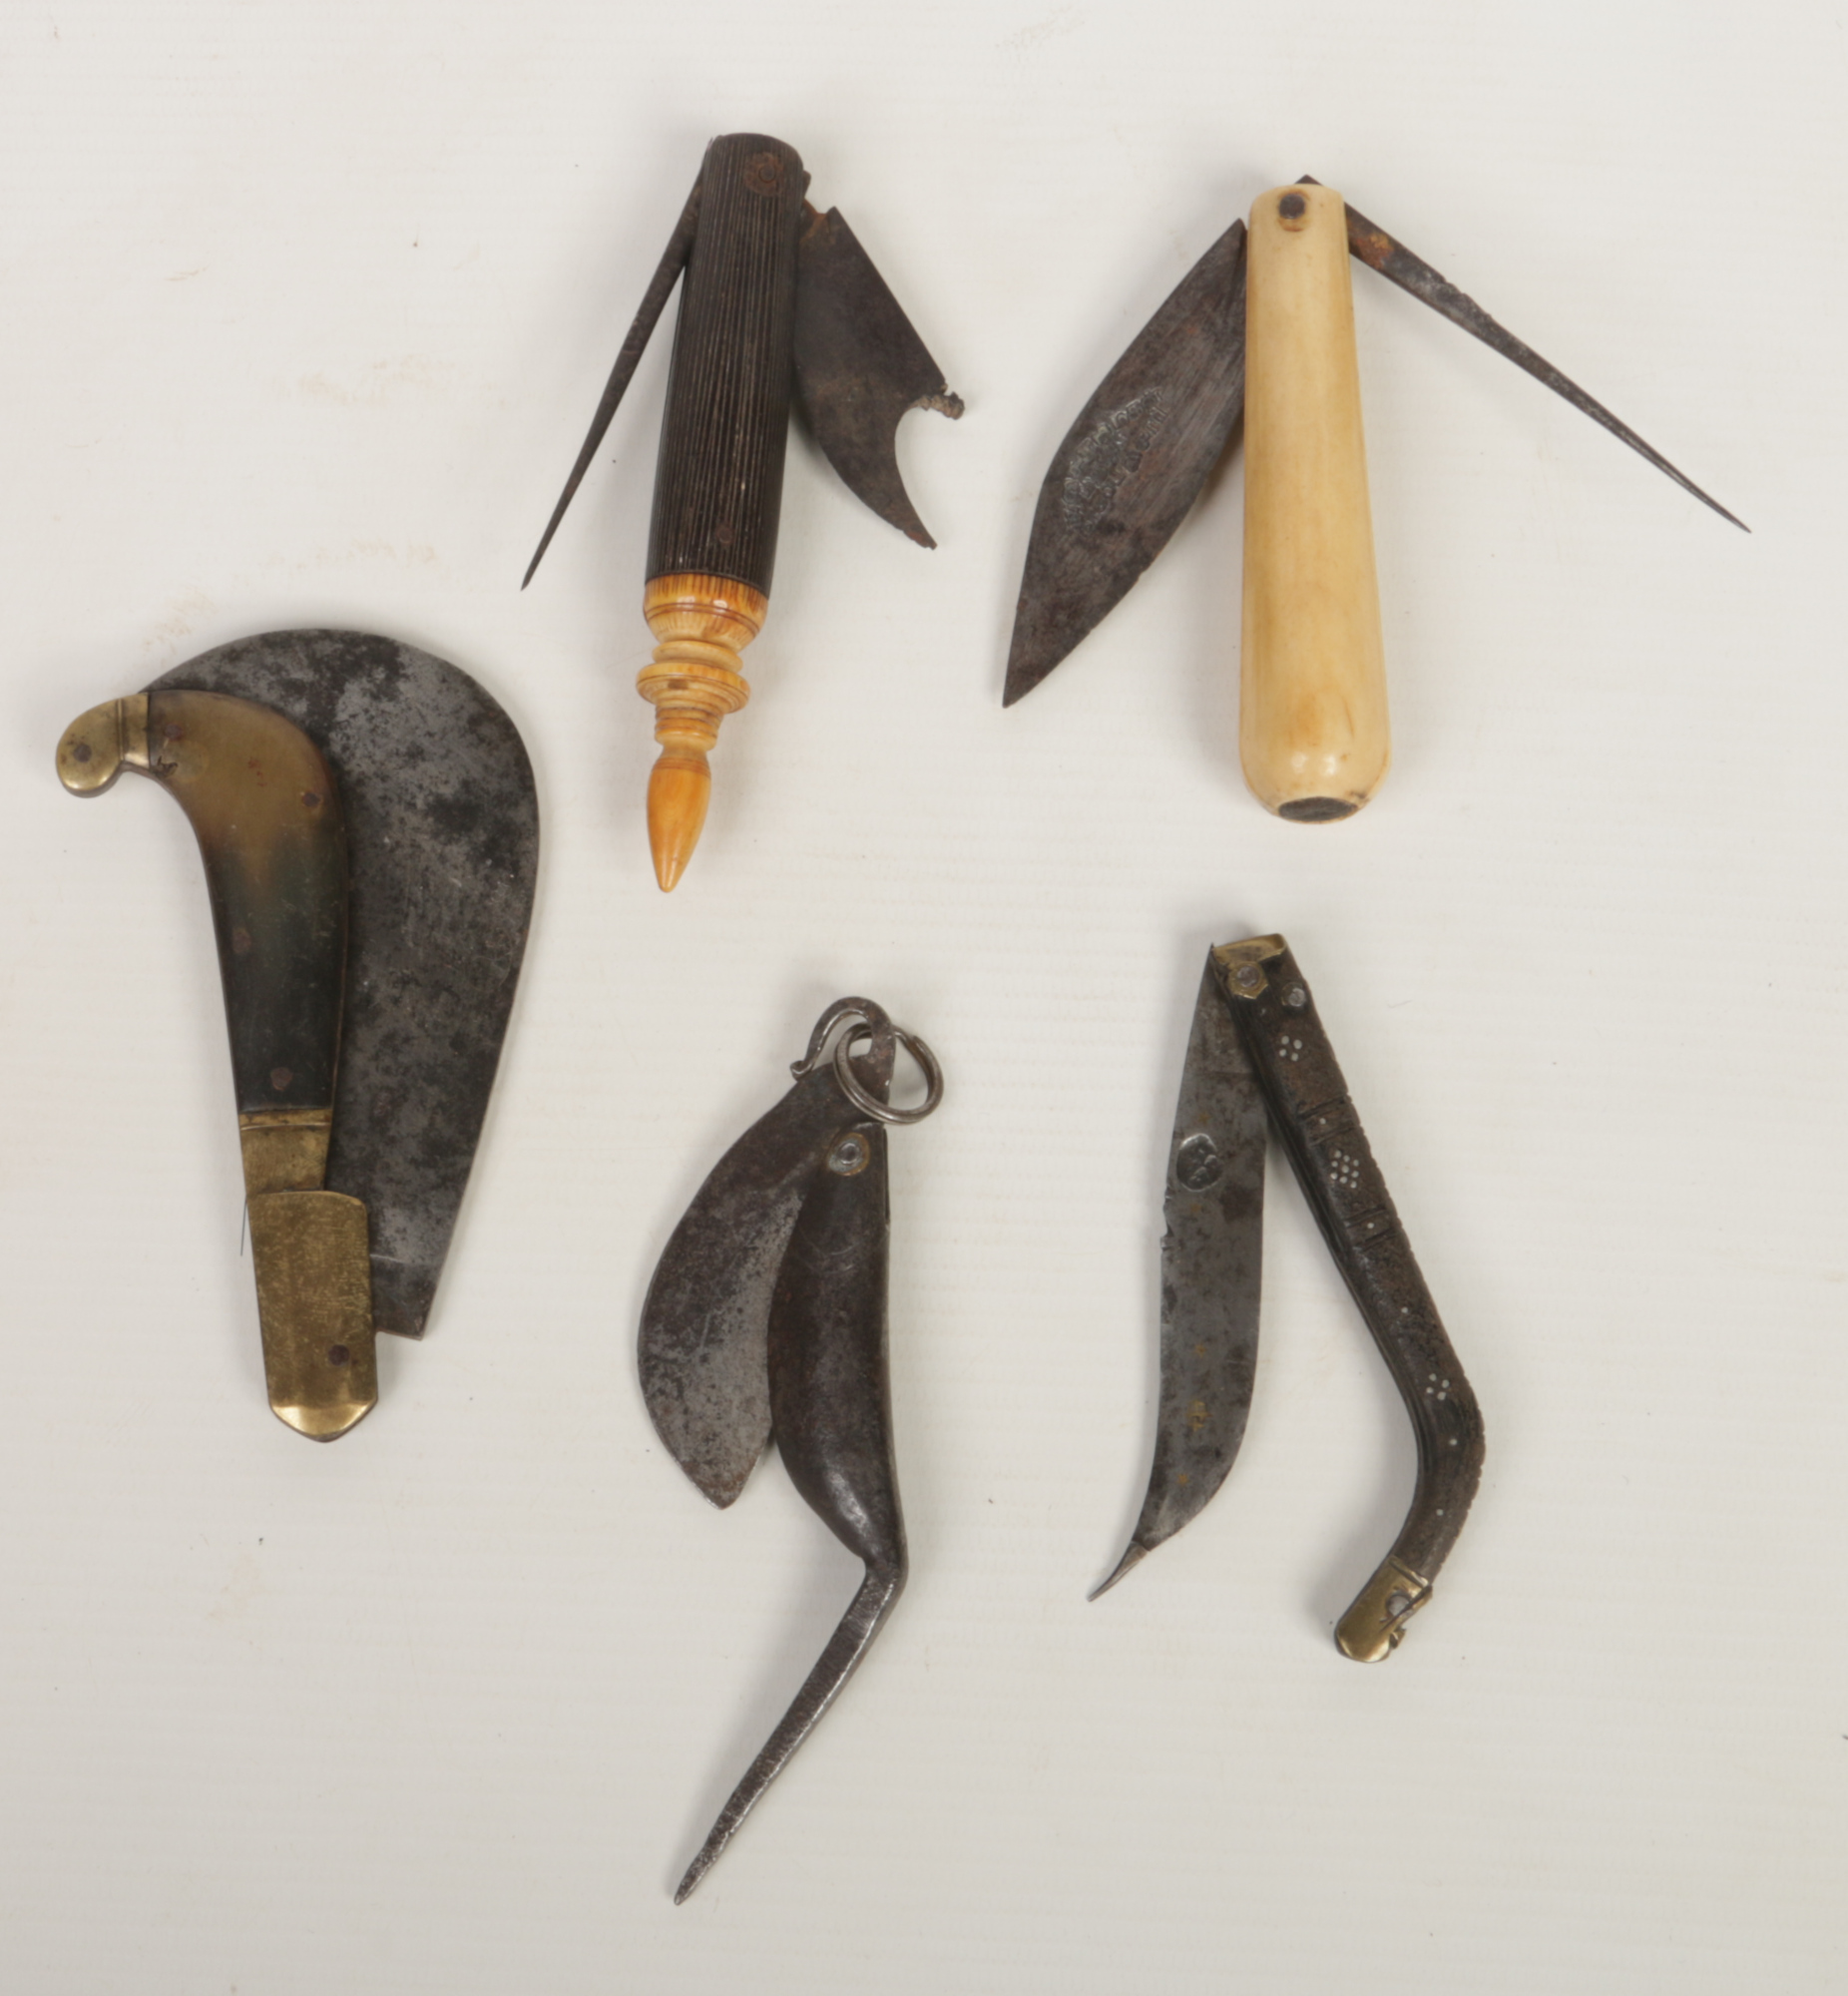 Lot 266 - Five Eastern folding knives, mainly 18th century. One double bladed example with reeded carvings and